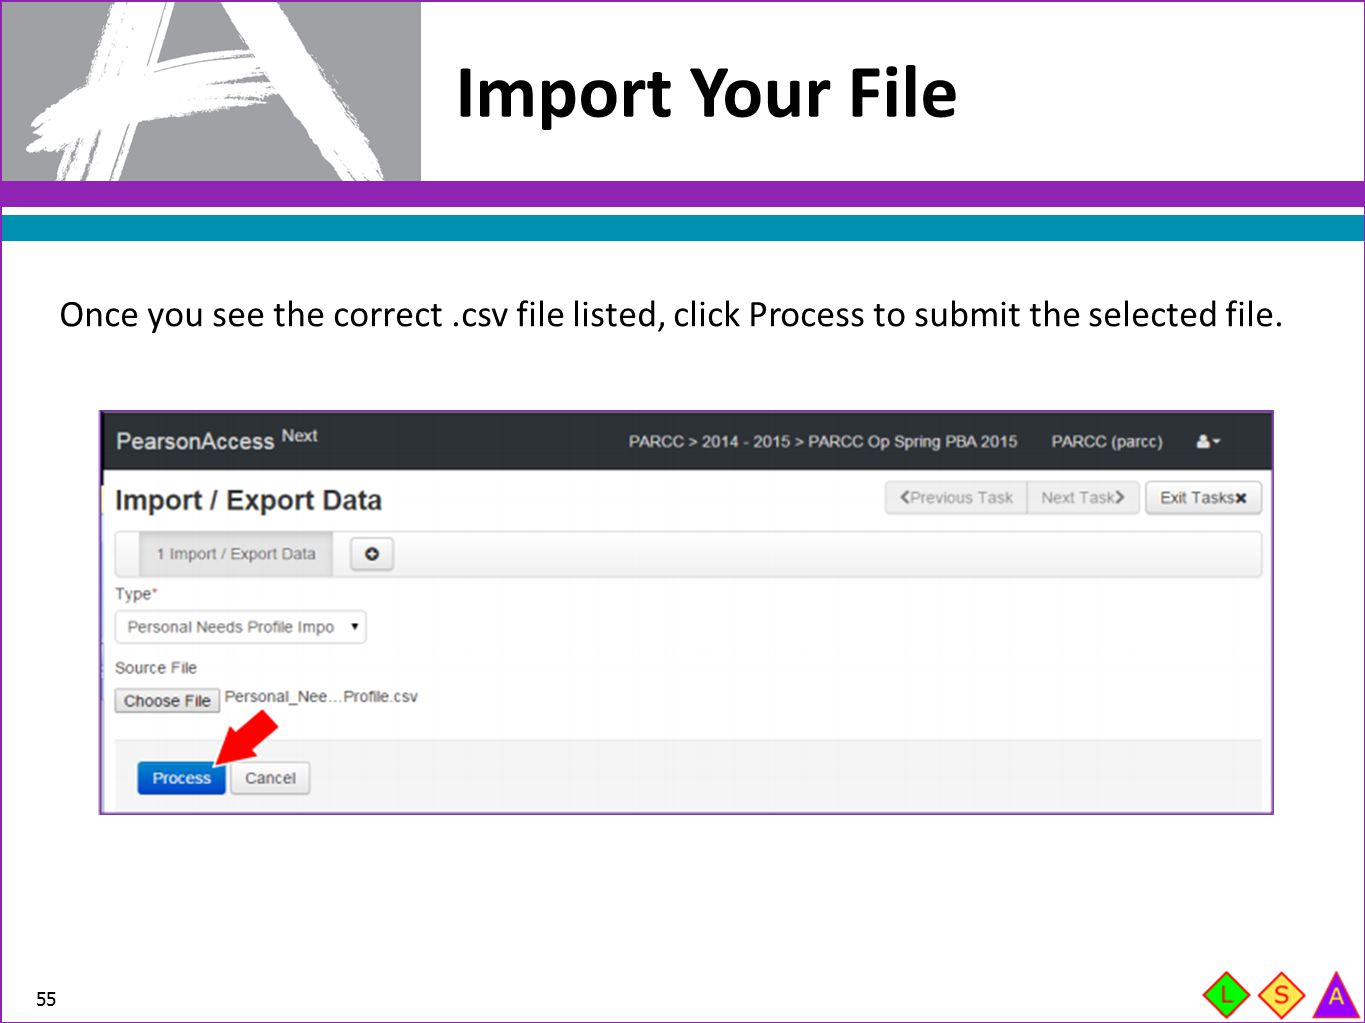 Once you see the correct.csv file listed, click Process to submit the selected file. Import Your File 55